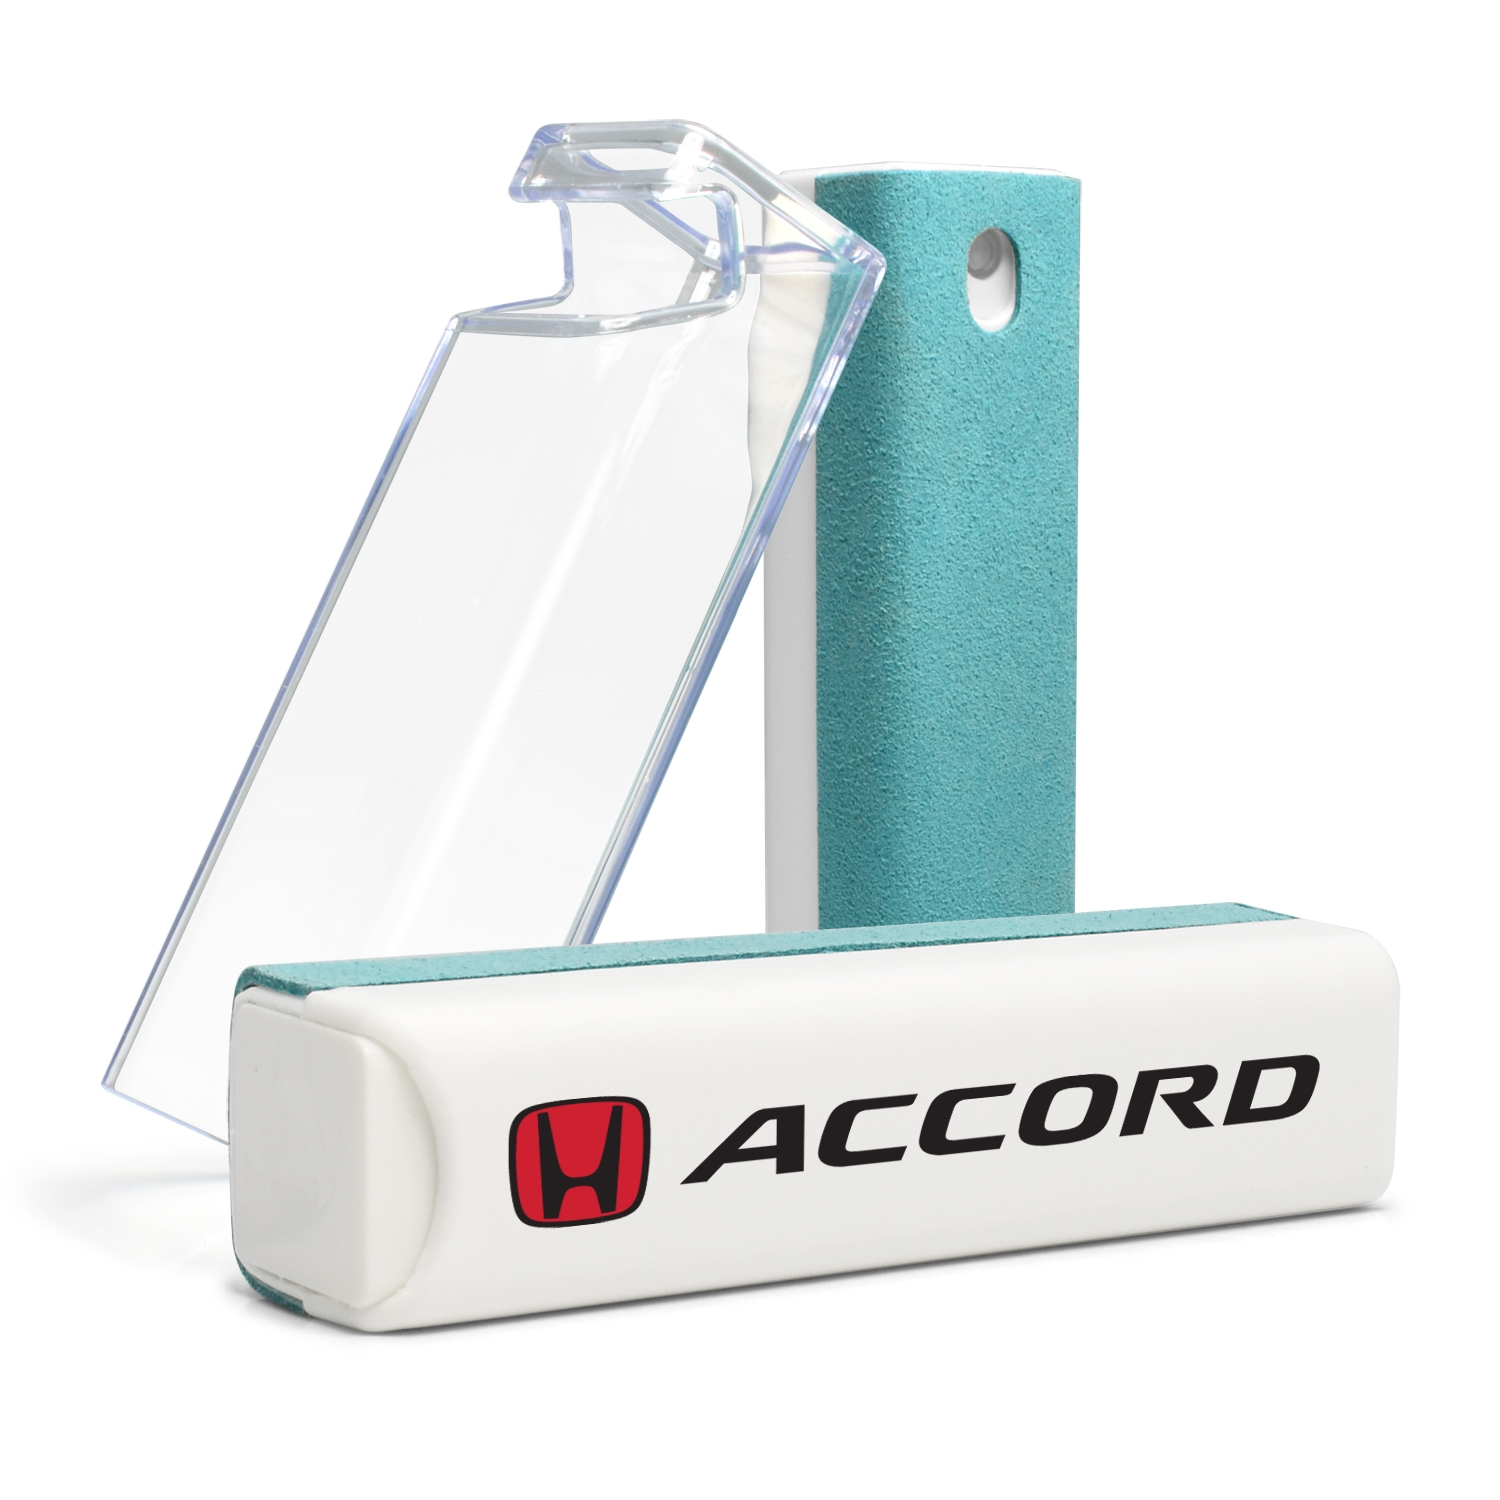 Honda Red Logo Accord All-in-One Blue Wipe Navigation Screen Cleaner with Clear Cell Phone Stand